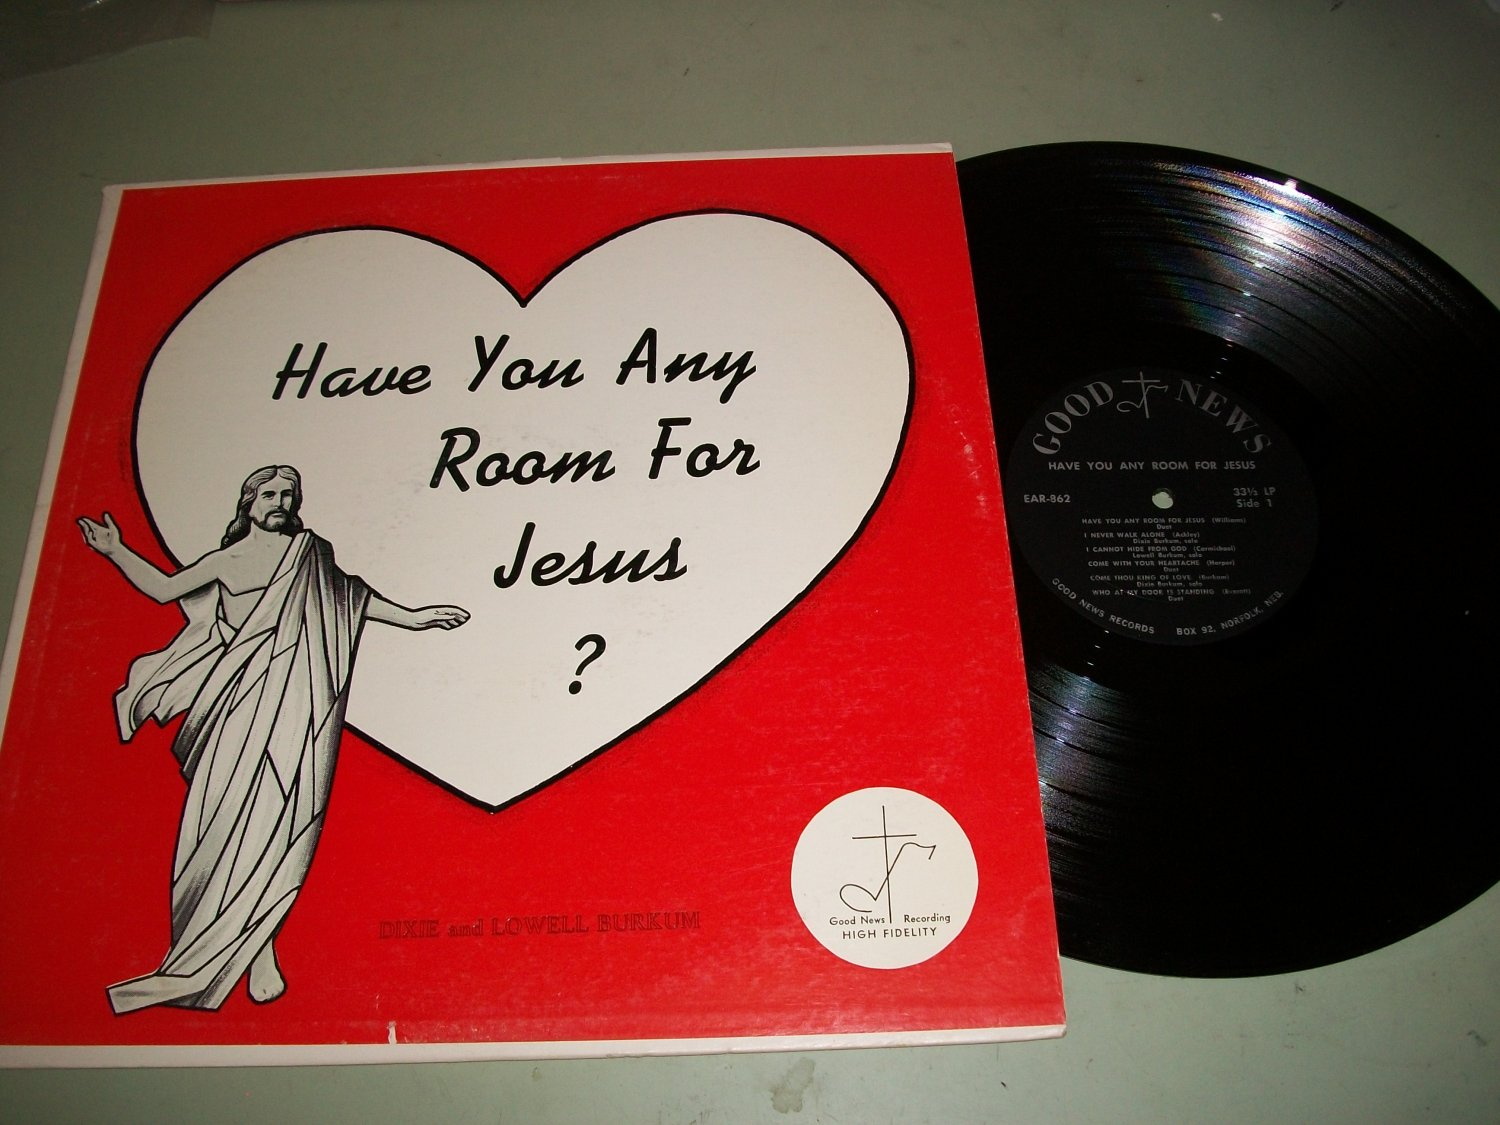 Dixie And Lowell Burkum - Have You Any Room For Jesus - GN 1003 - Record LP